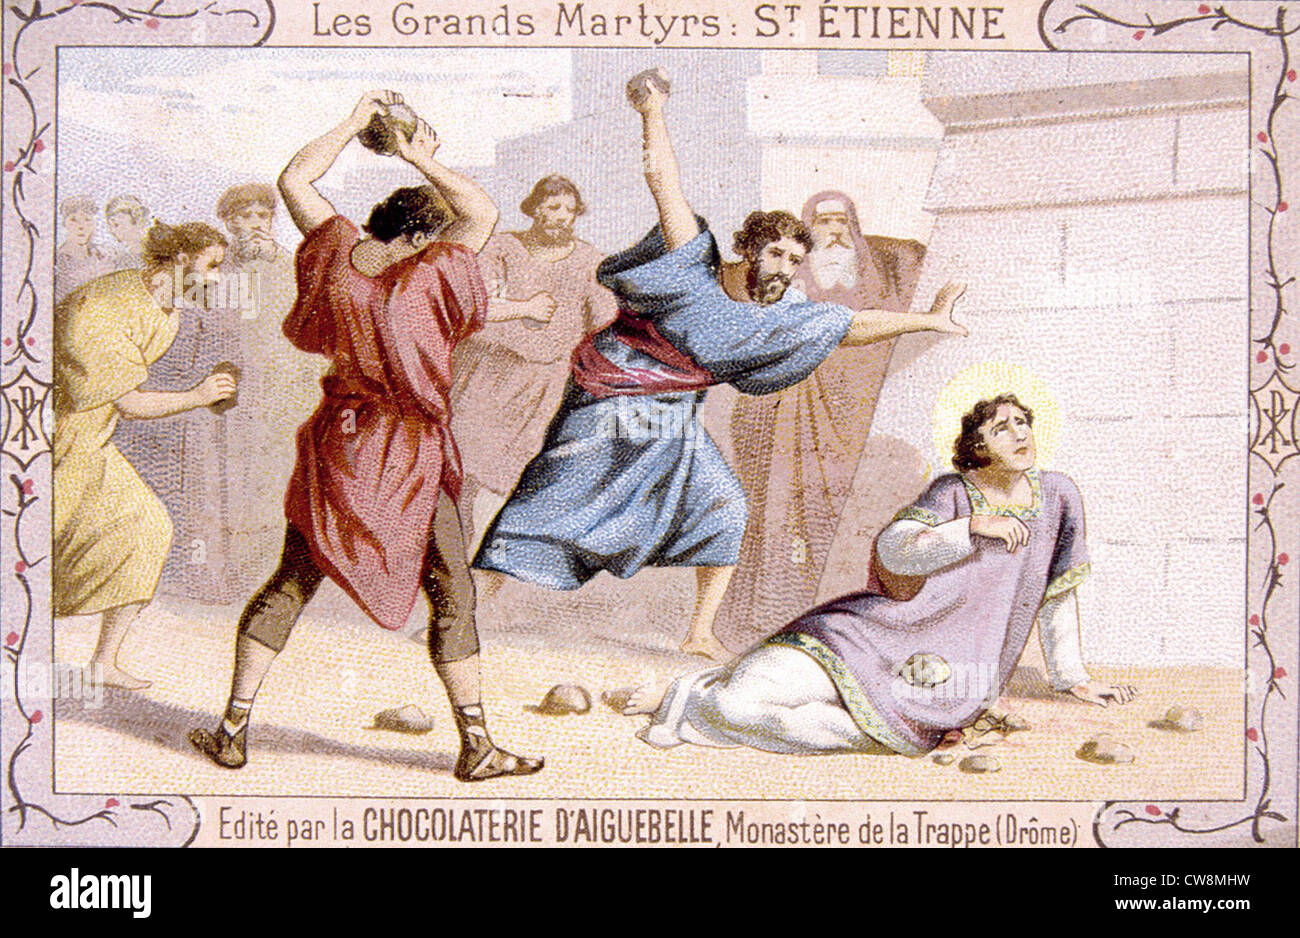 The martyr Saint Steven, advertisement - Stock Image